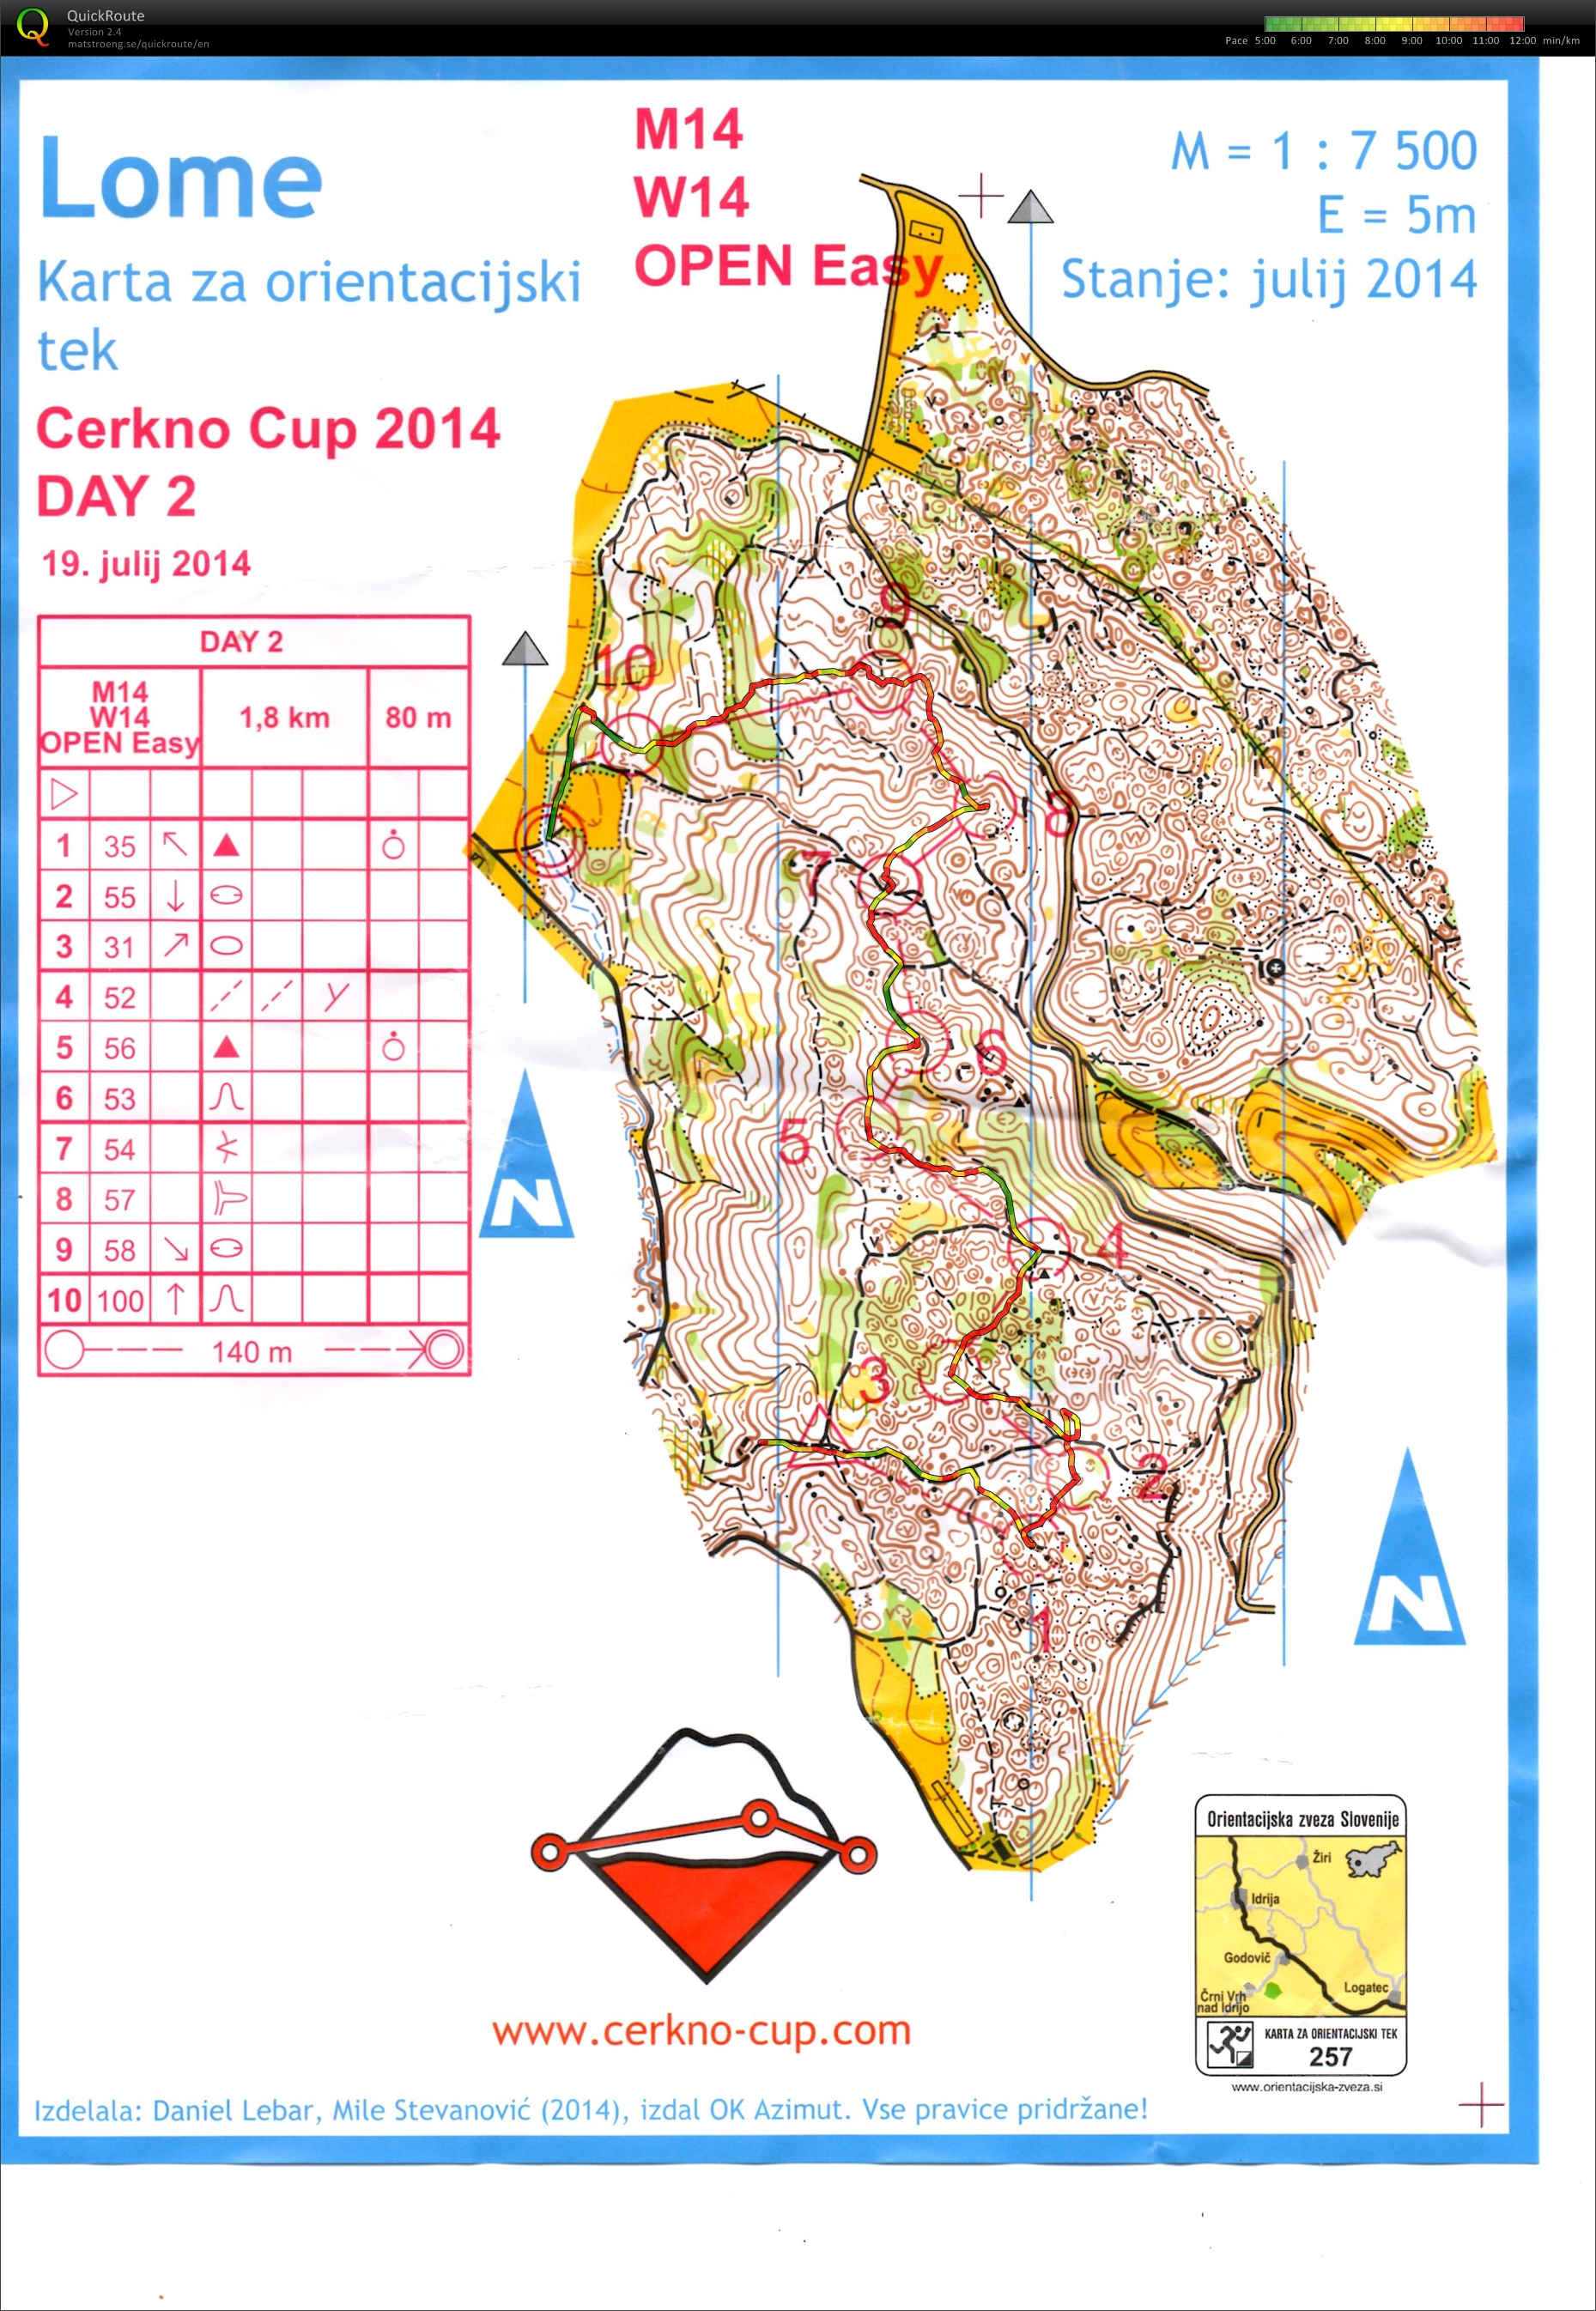 Cerkno cup 2014- Stage 2, 19.7.2014 (Lome) (19. 07. 2014)